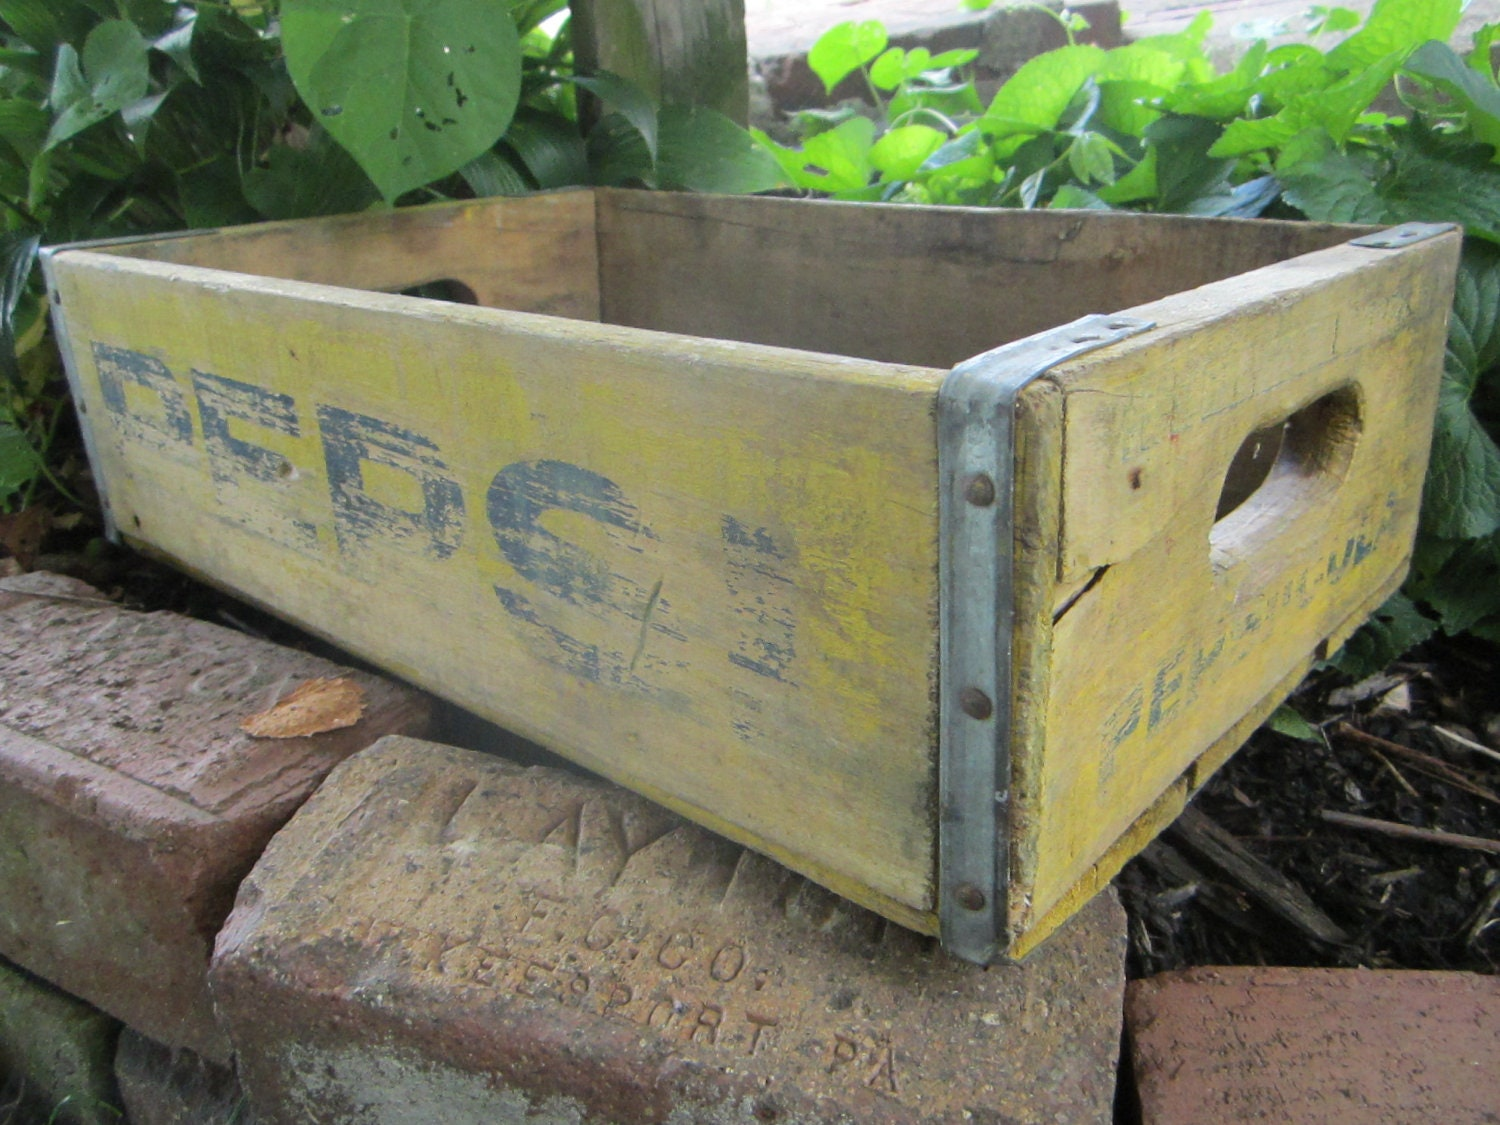 Marvelous photograph of Antique Wood Pepsi Crate Beverage Delivery by TheOldTimeJunkShop with #5FA328 color and 1500x1125 pixels